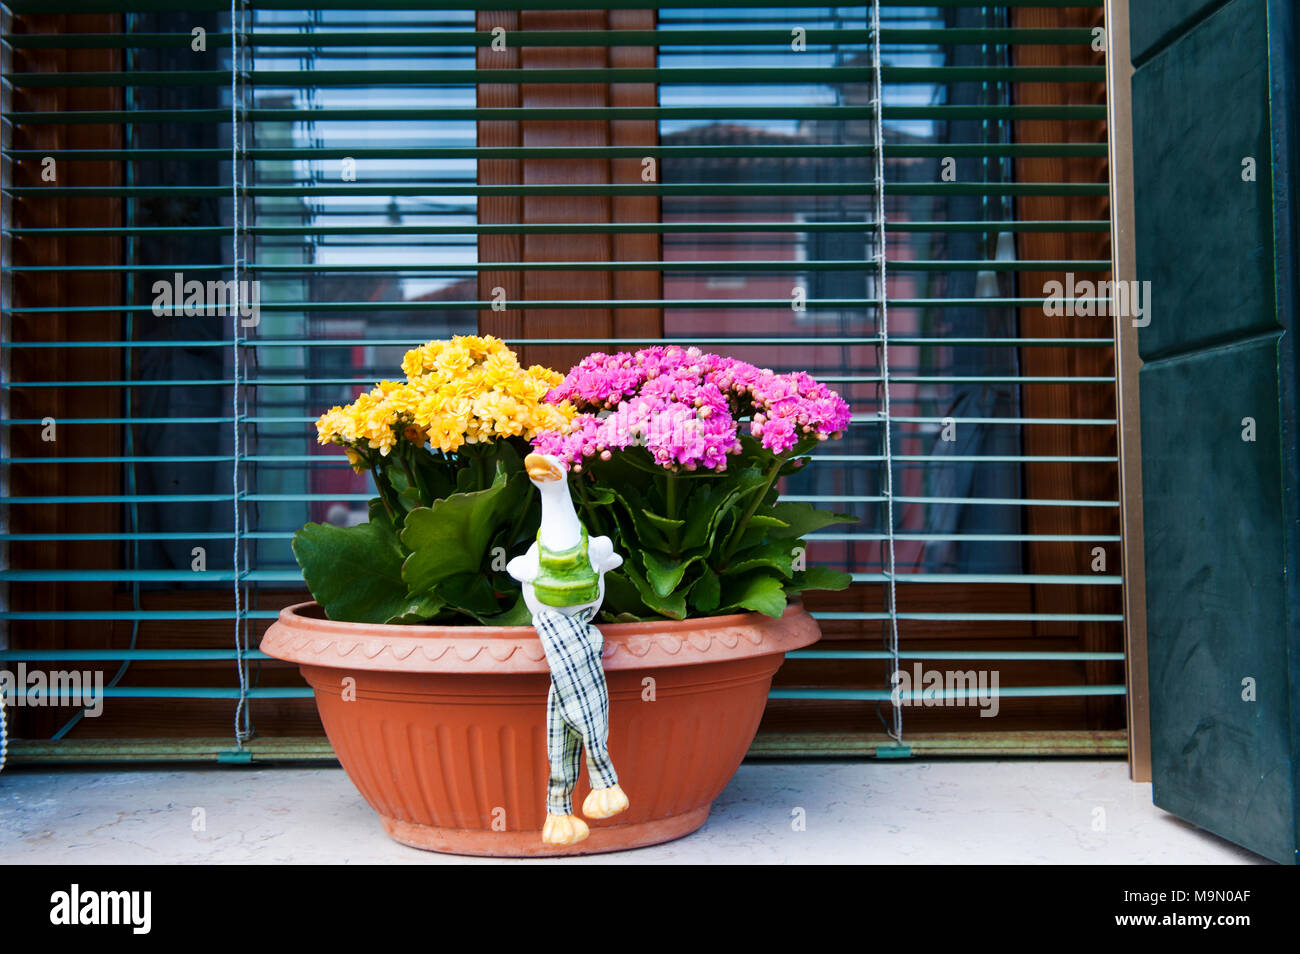 A decorative plant on the windowsill of a house in Burano, Venice - Stock Image